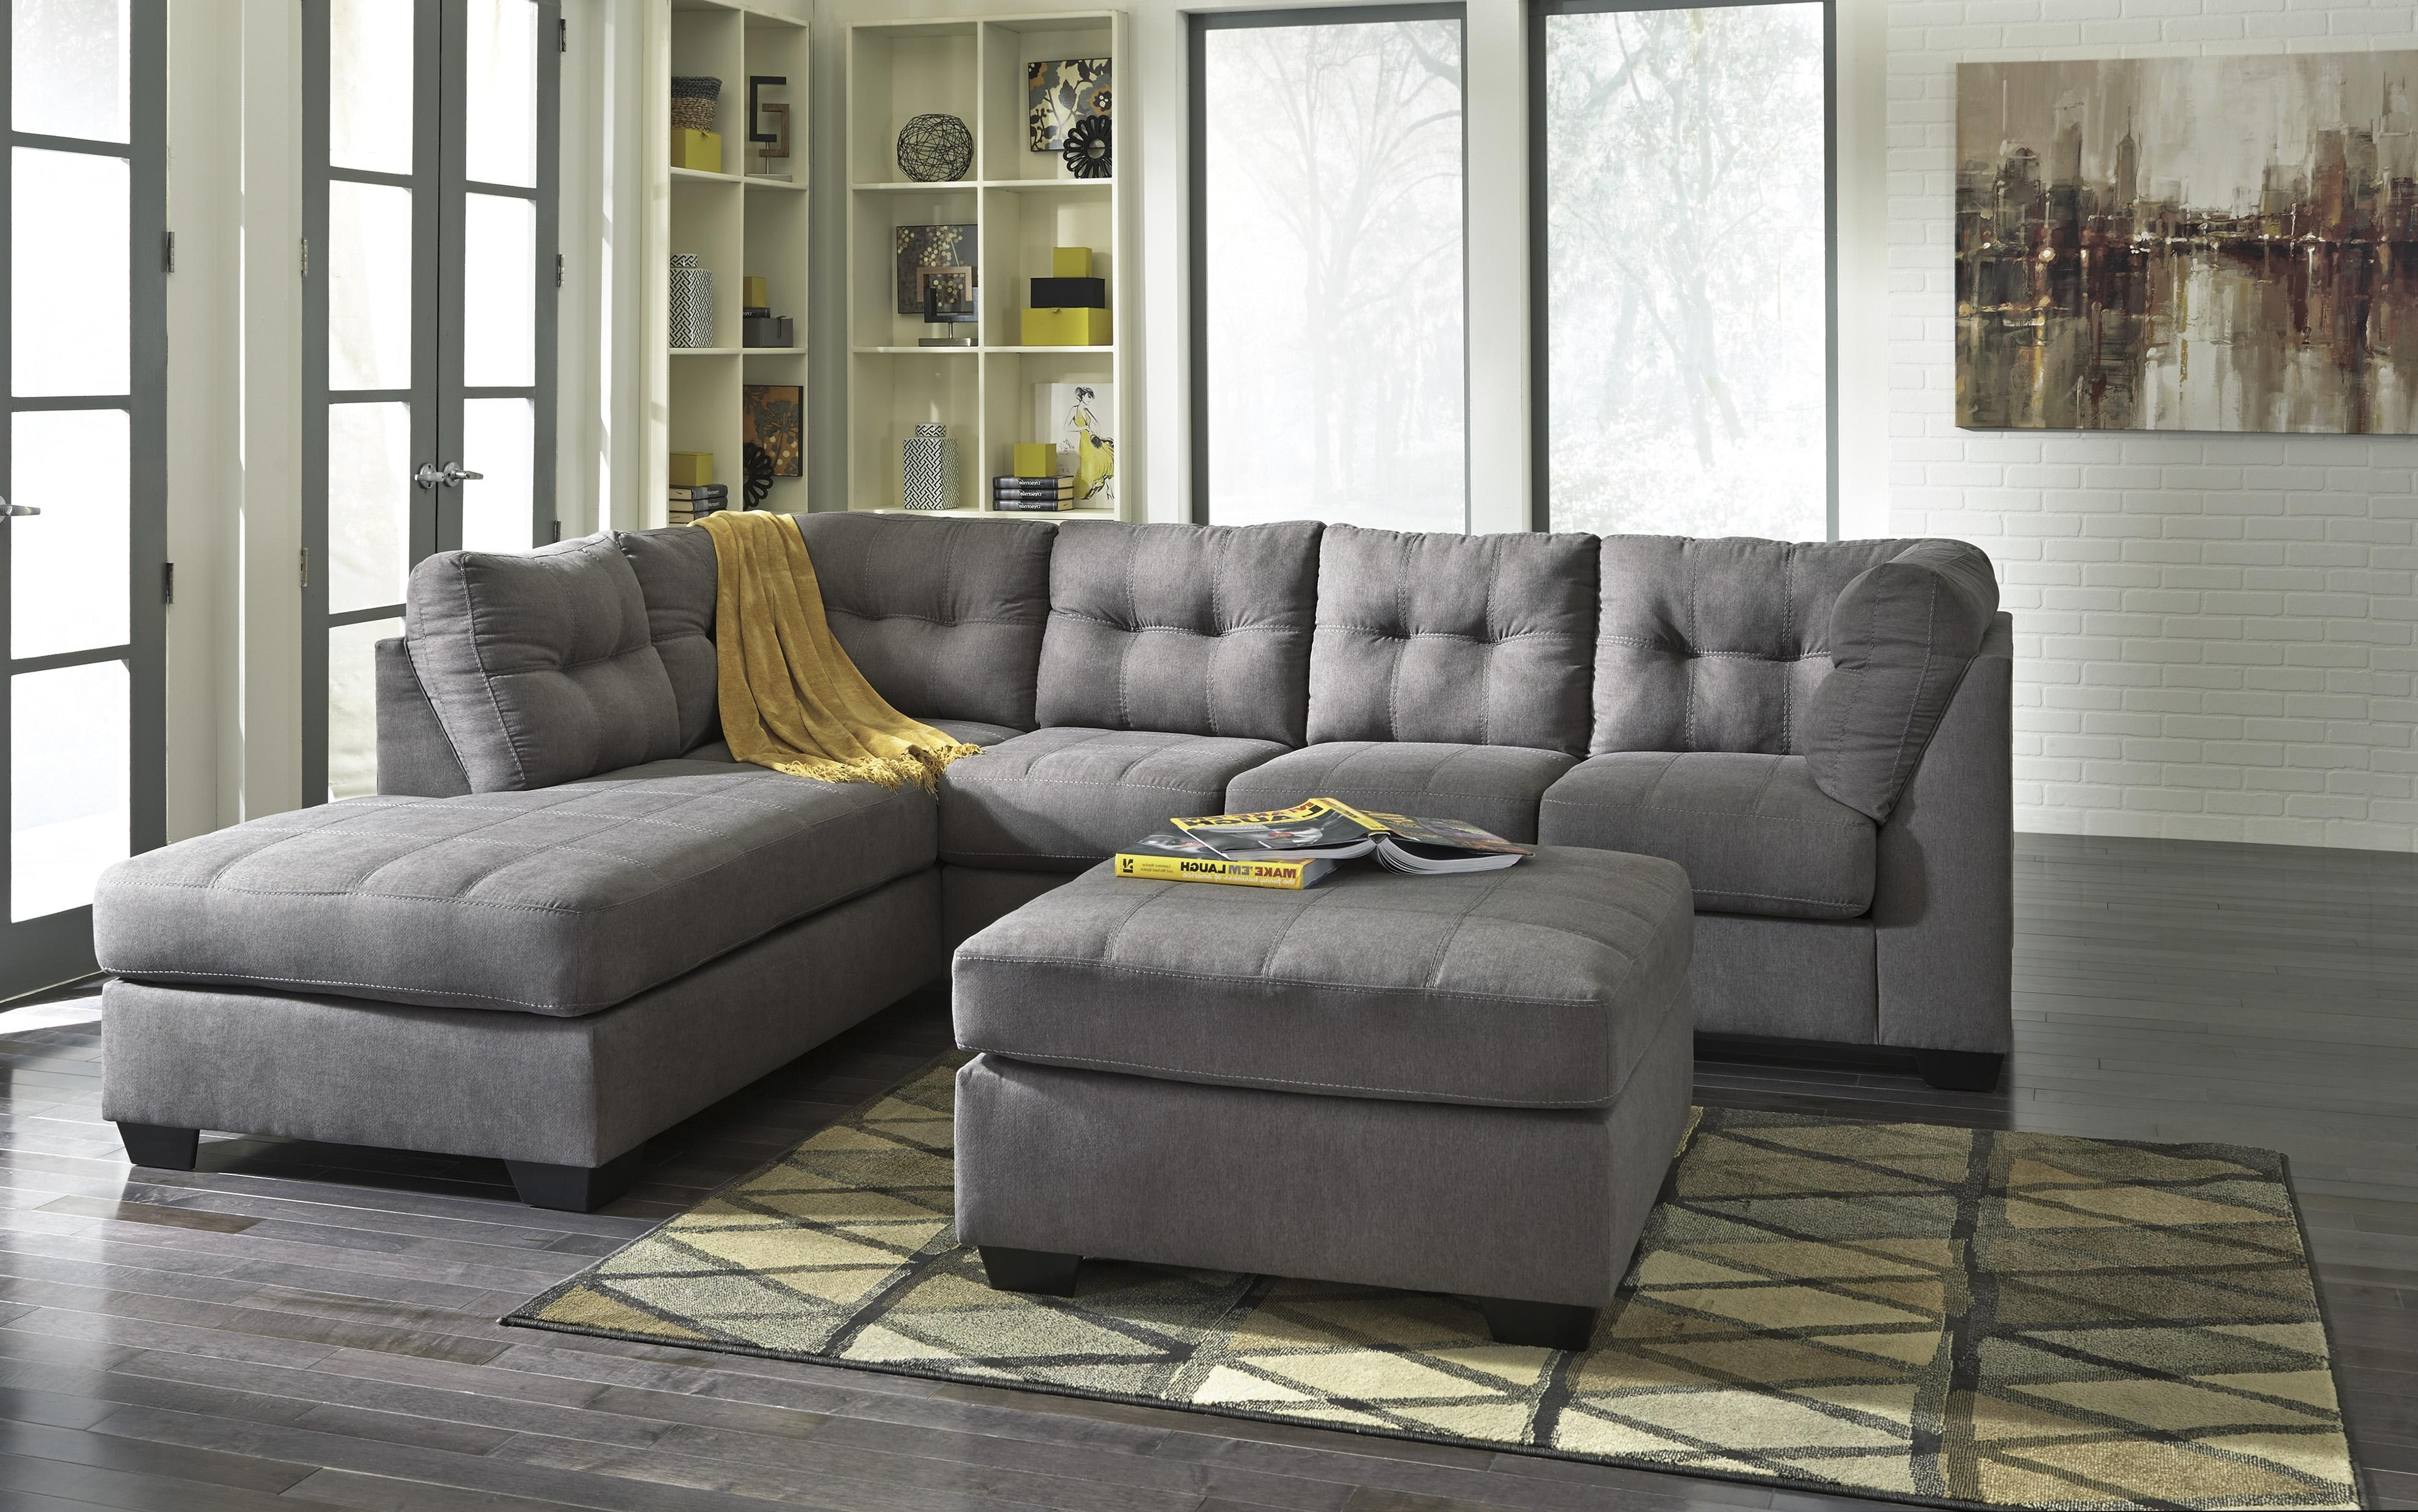 Benchcraft Maier – Charcoal 2 Piece Sectional W/ Sleeper Sofa In Most Recent Sofas With Chaise And Ottoman (View 12 of 20)